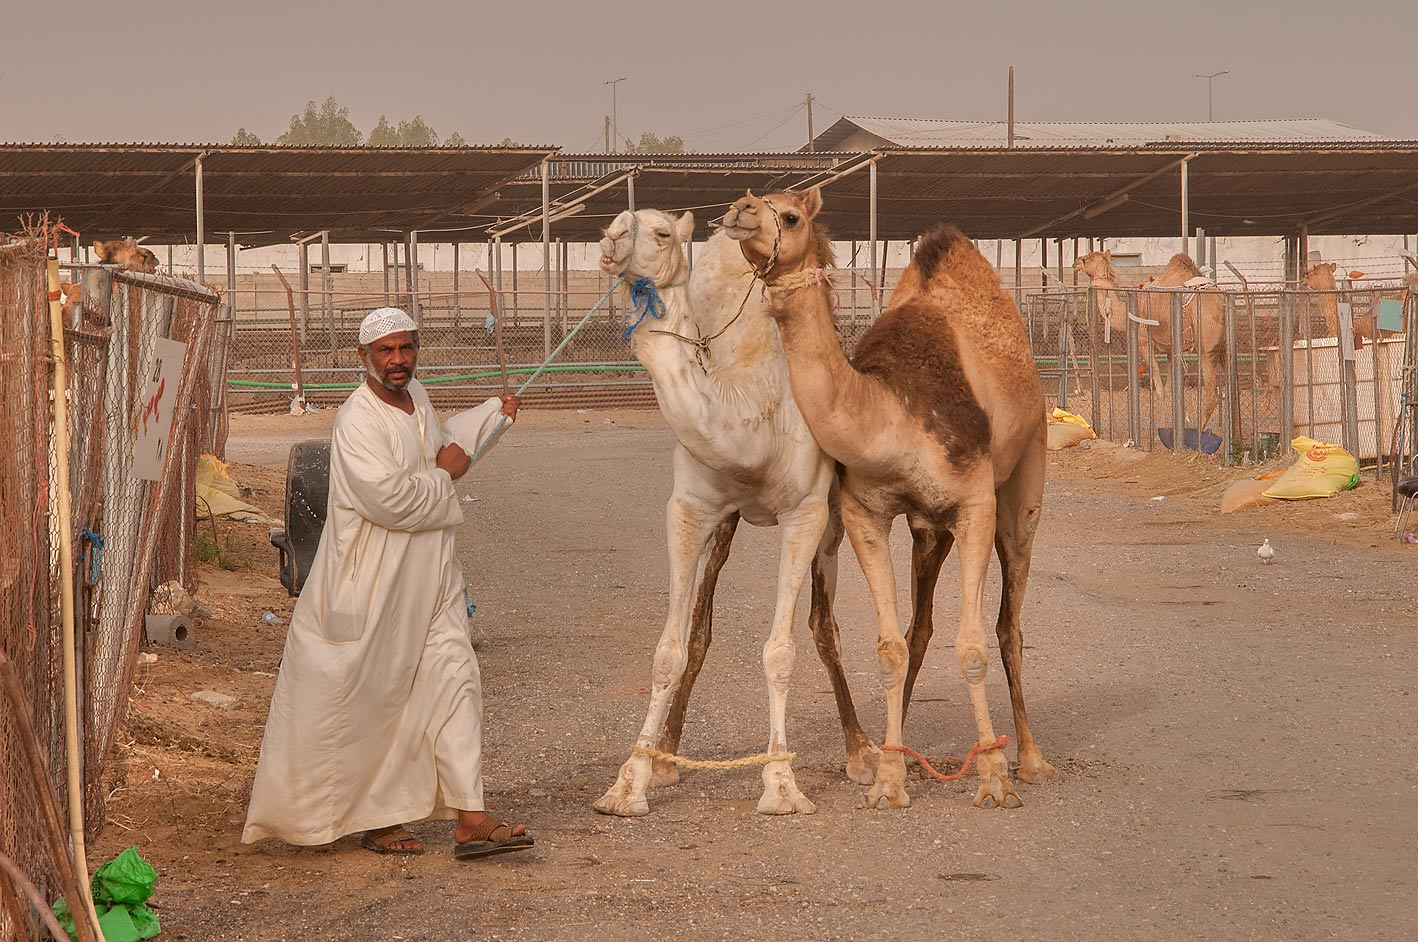 Person directing two camels in Livestock Market, Abu Hamour area. Doha, Qatar